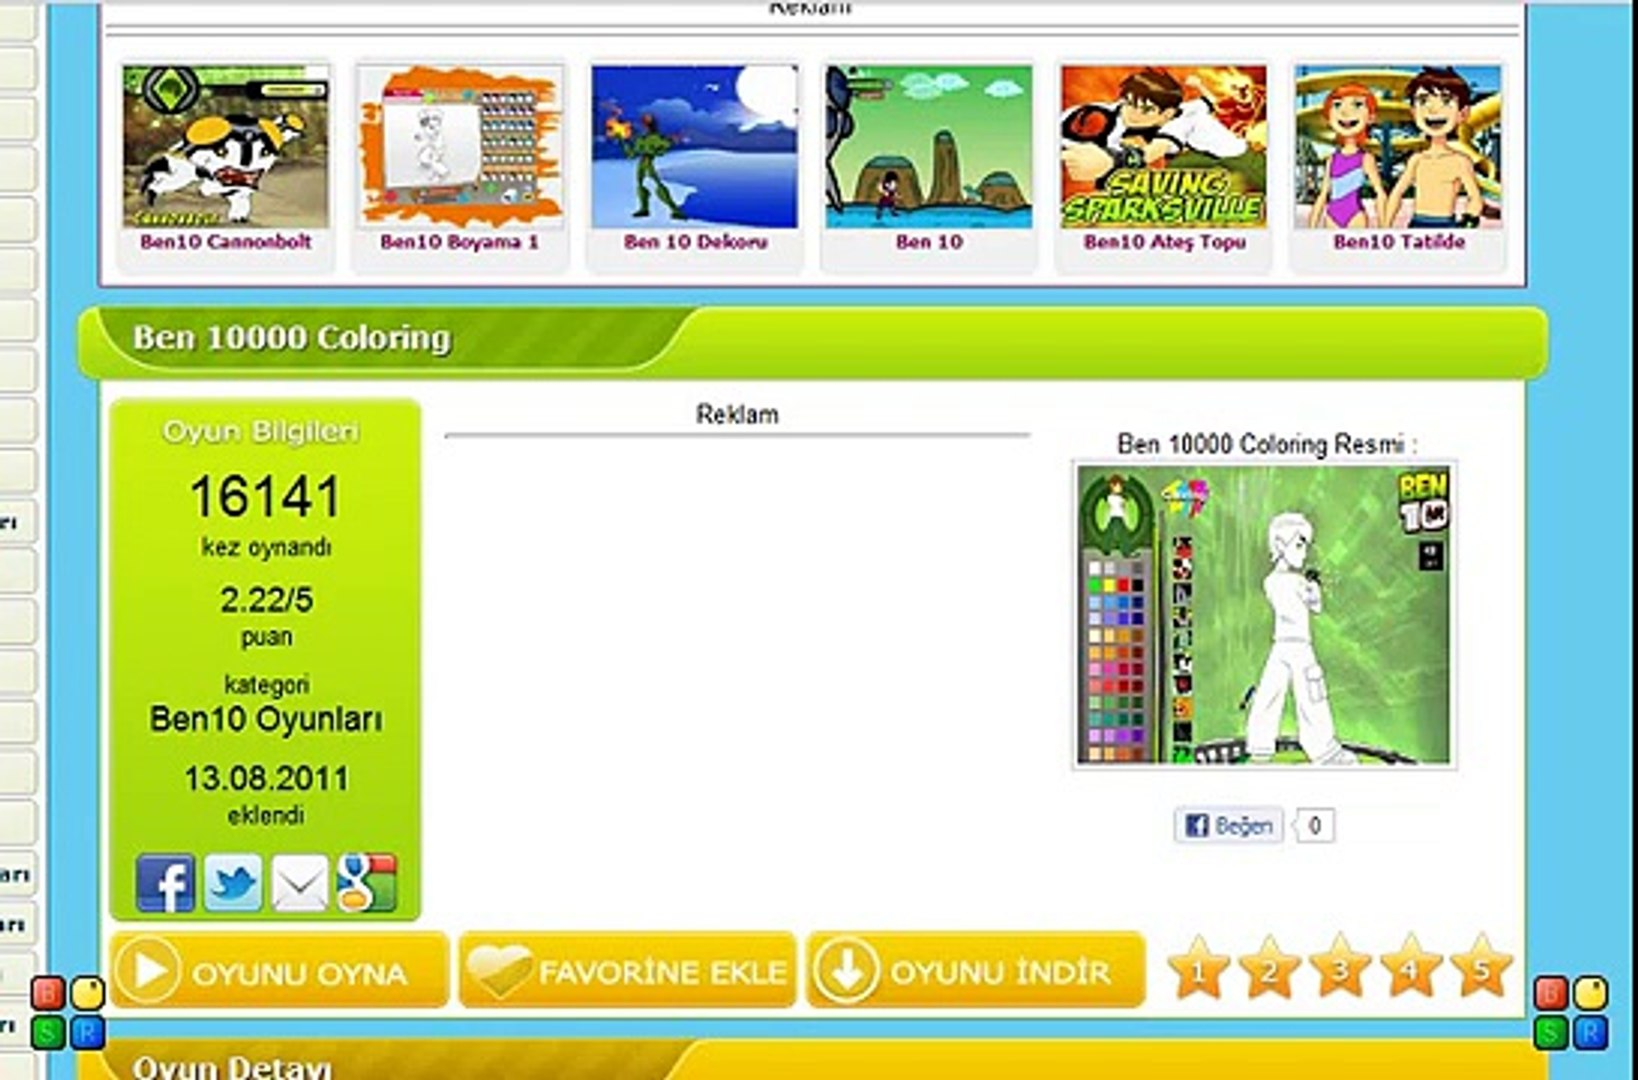 Ben 10000 Coloring Video Dailymotion